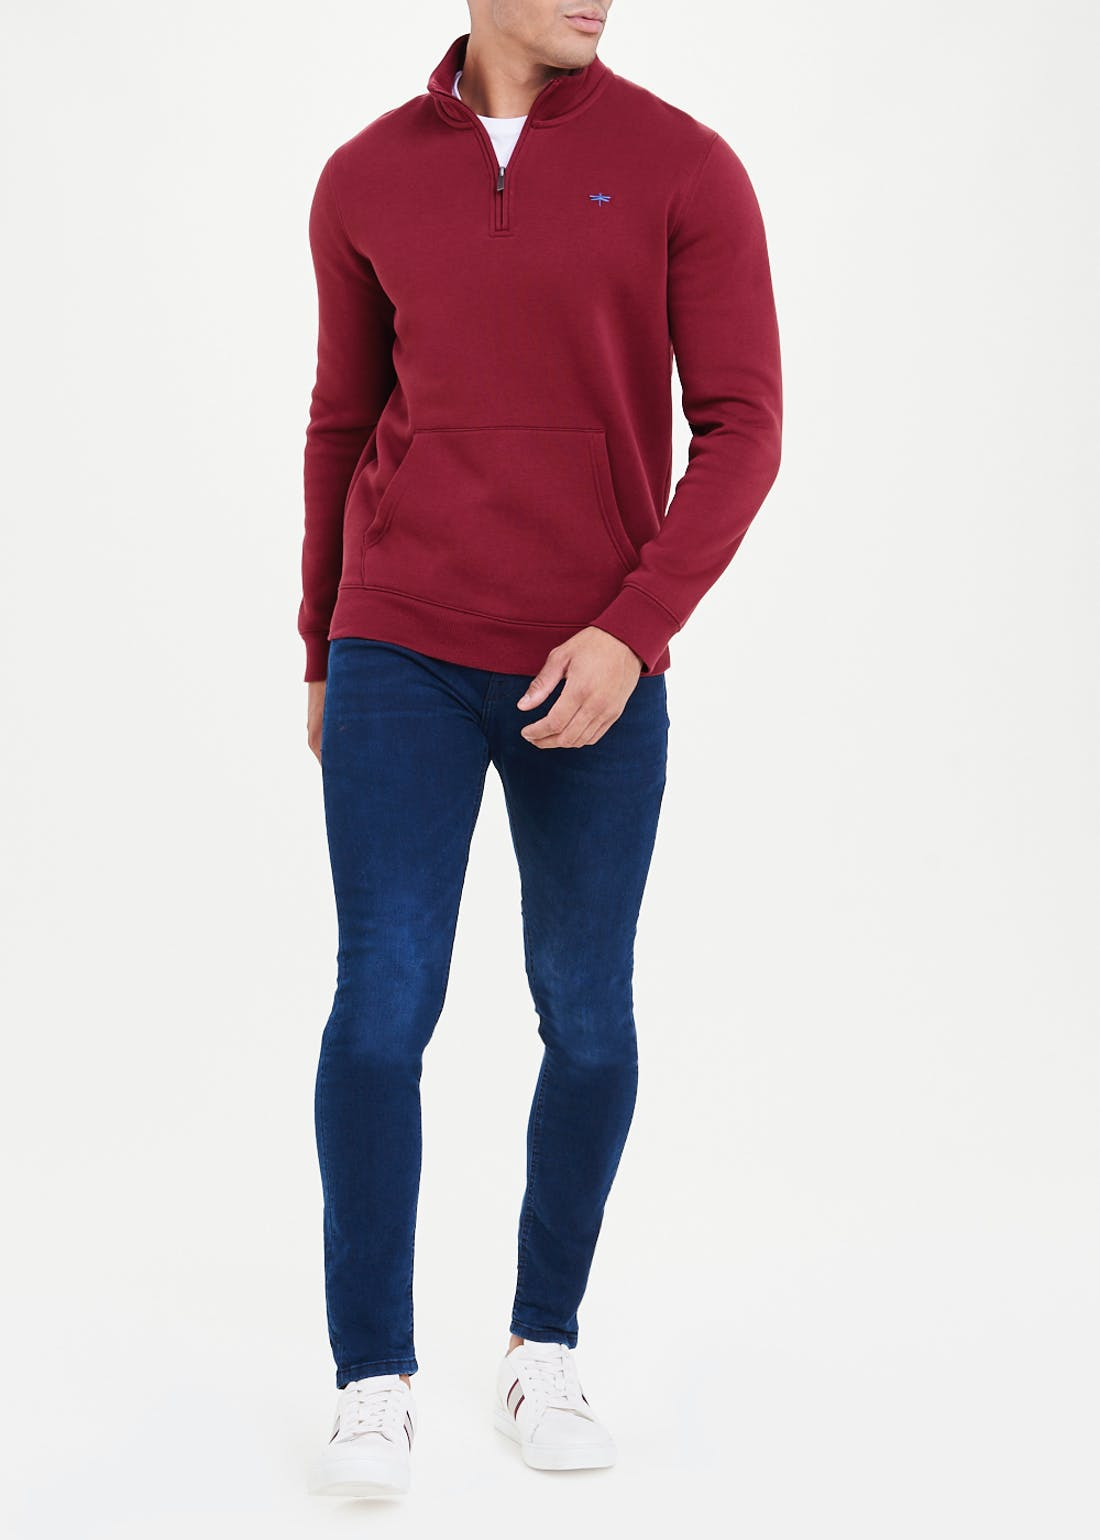 Embroidered Half Zip Sweatshirt